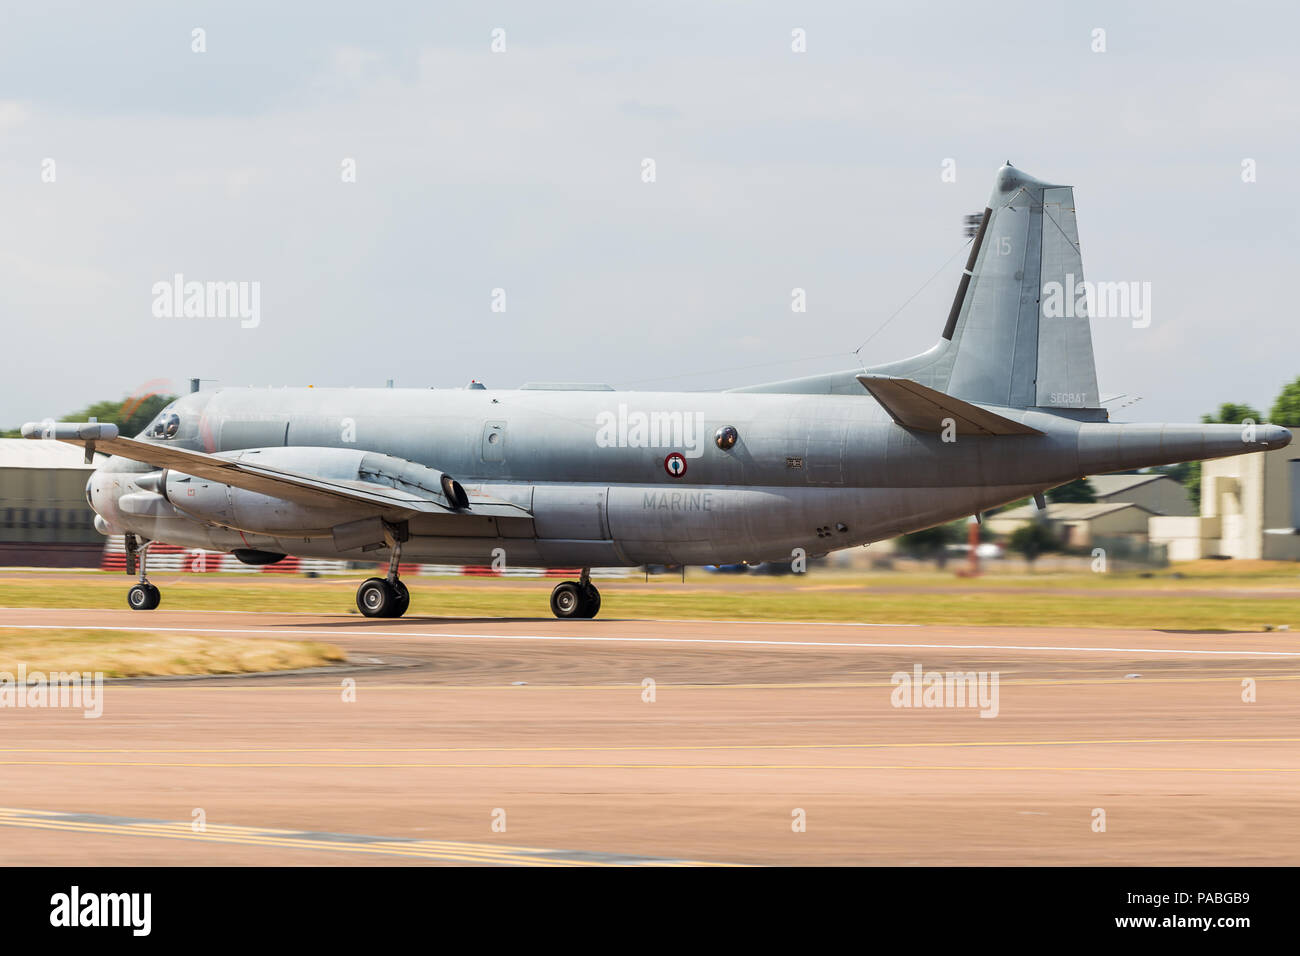 French Navy ATL2 pictured at the 2018 Royal International Air Tattoo at RAF Fairford in Gloucestershire. - Stock Image